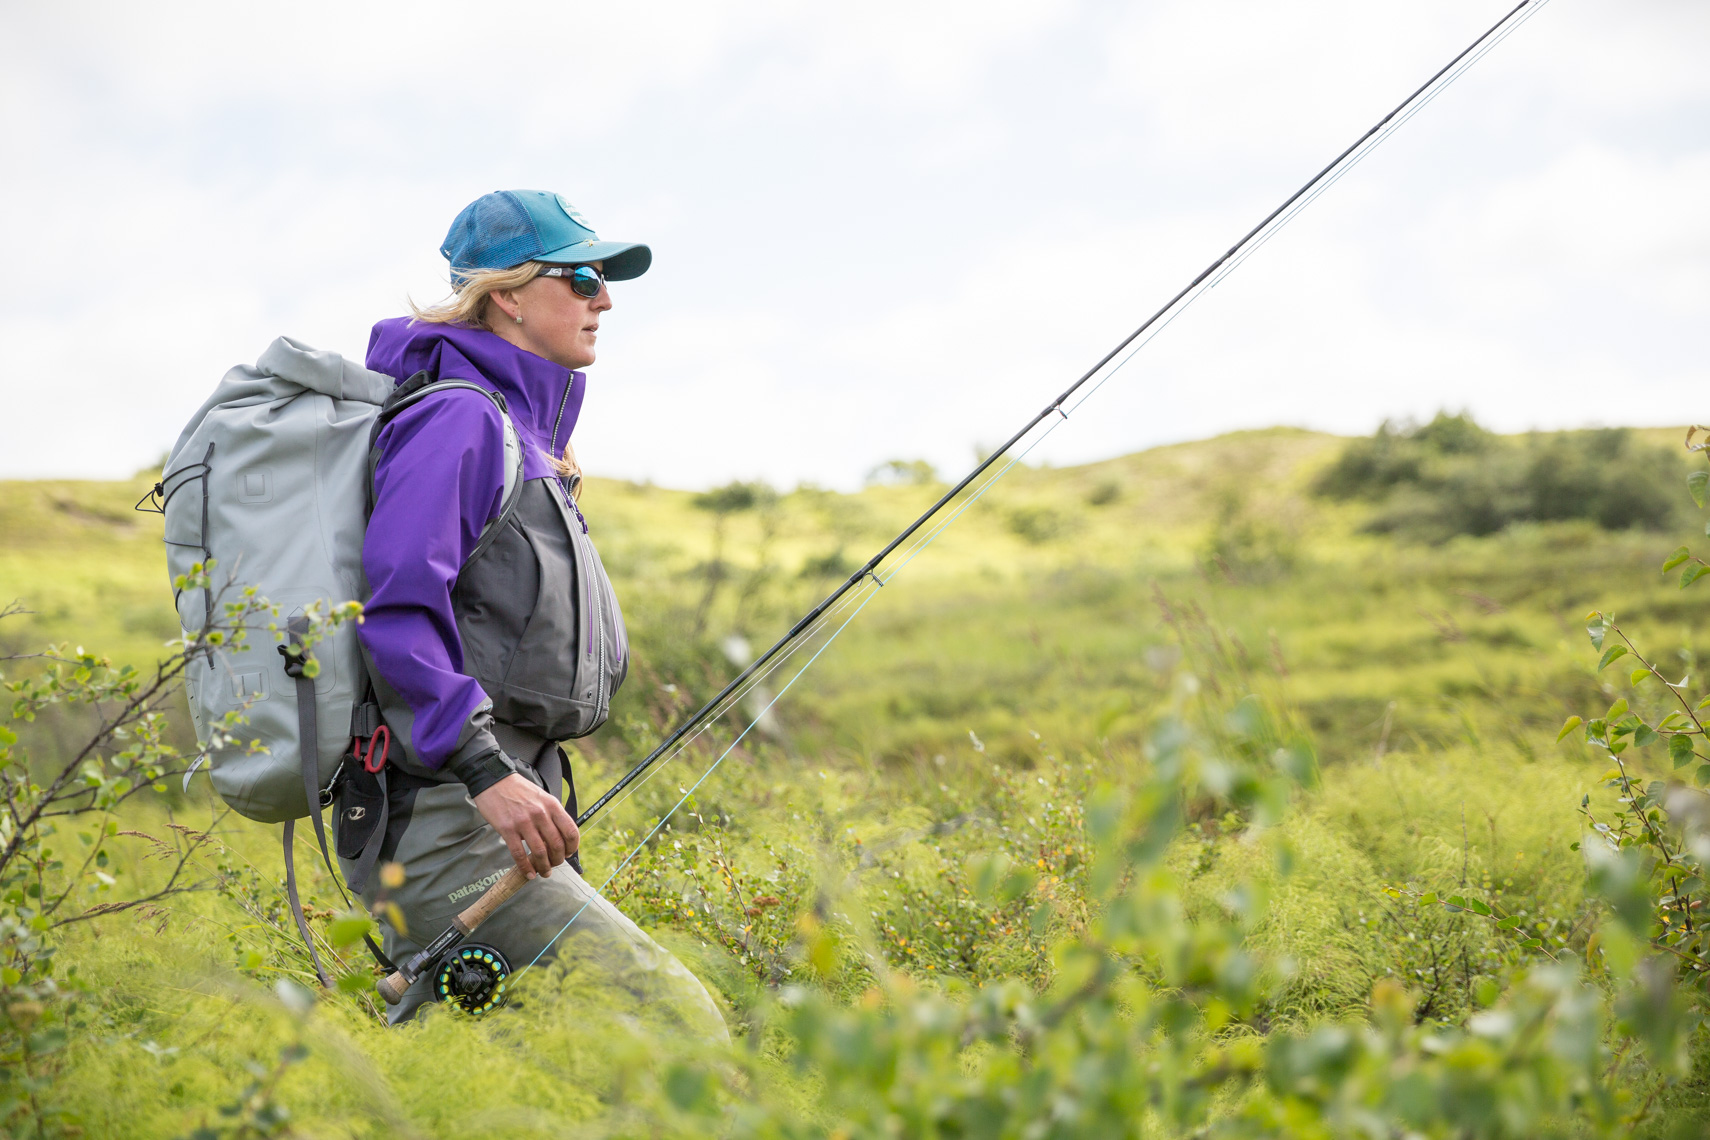 Kate Taylor Patagonia ambassador fishing Alaska Adventure